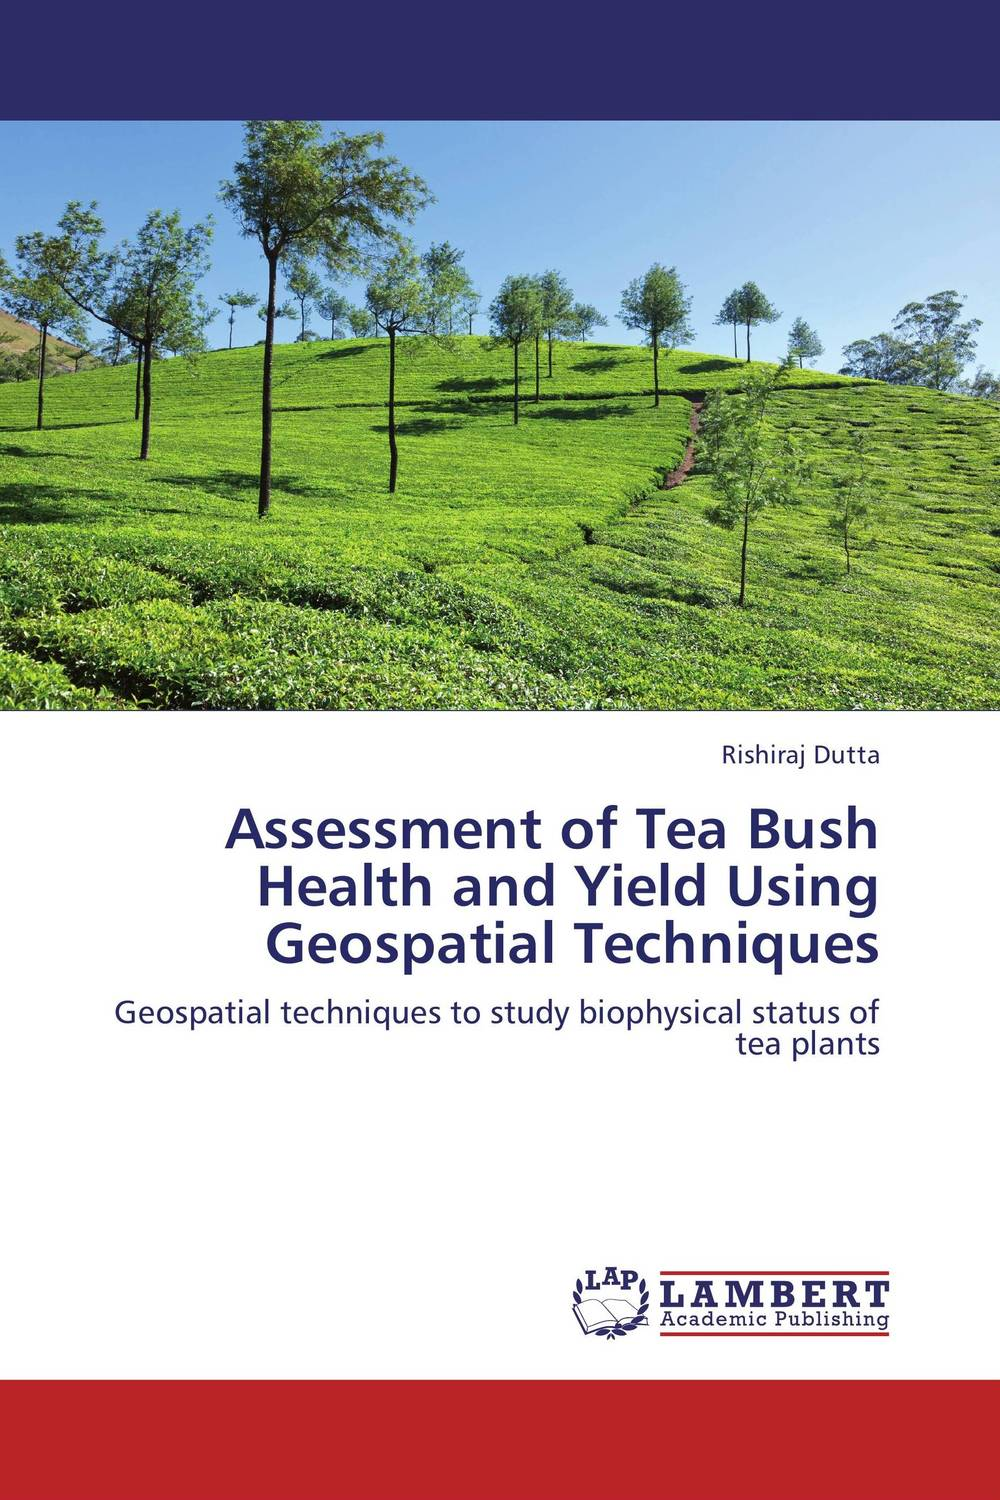 Assessment of Tea Bush Health and Yield Using Geospatial Techniques land degradation assessment using geospatial technique